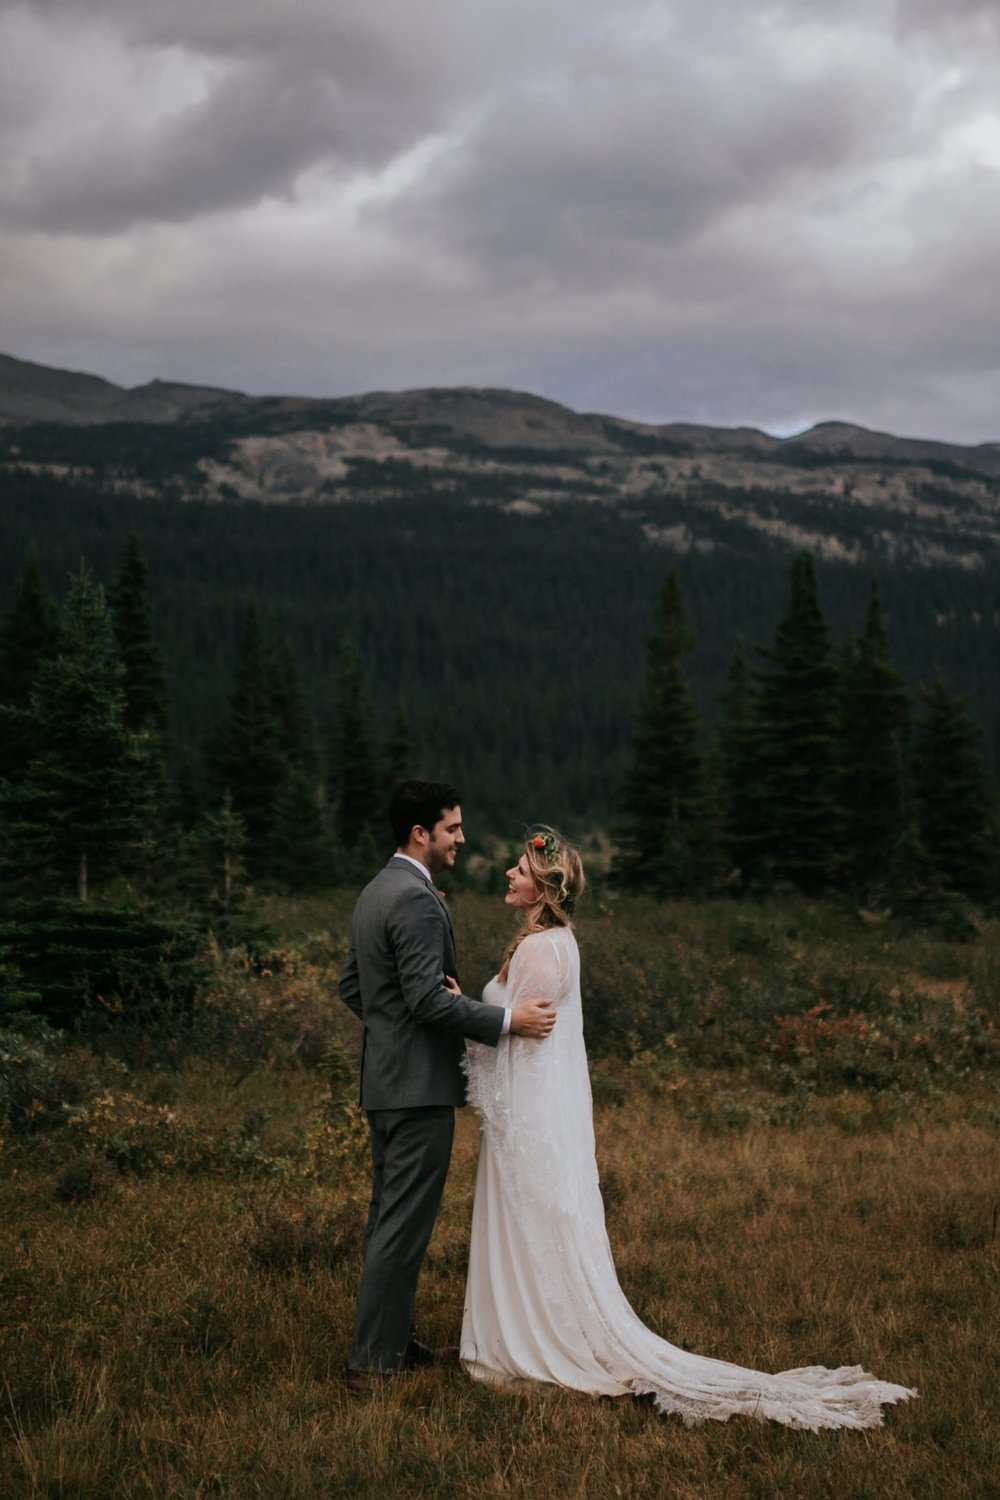 Banff National Park, Alberta Canada Elopement - Grace and Jaden Photography (151).jpg